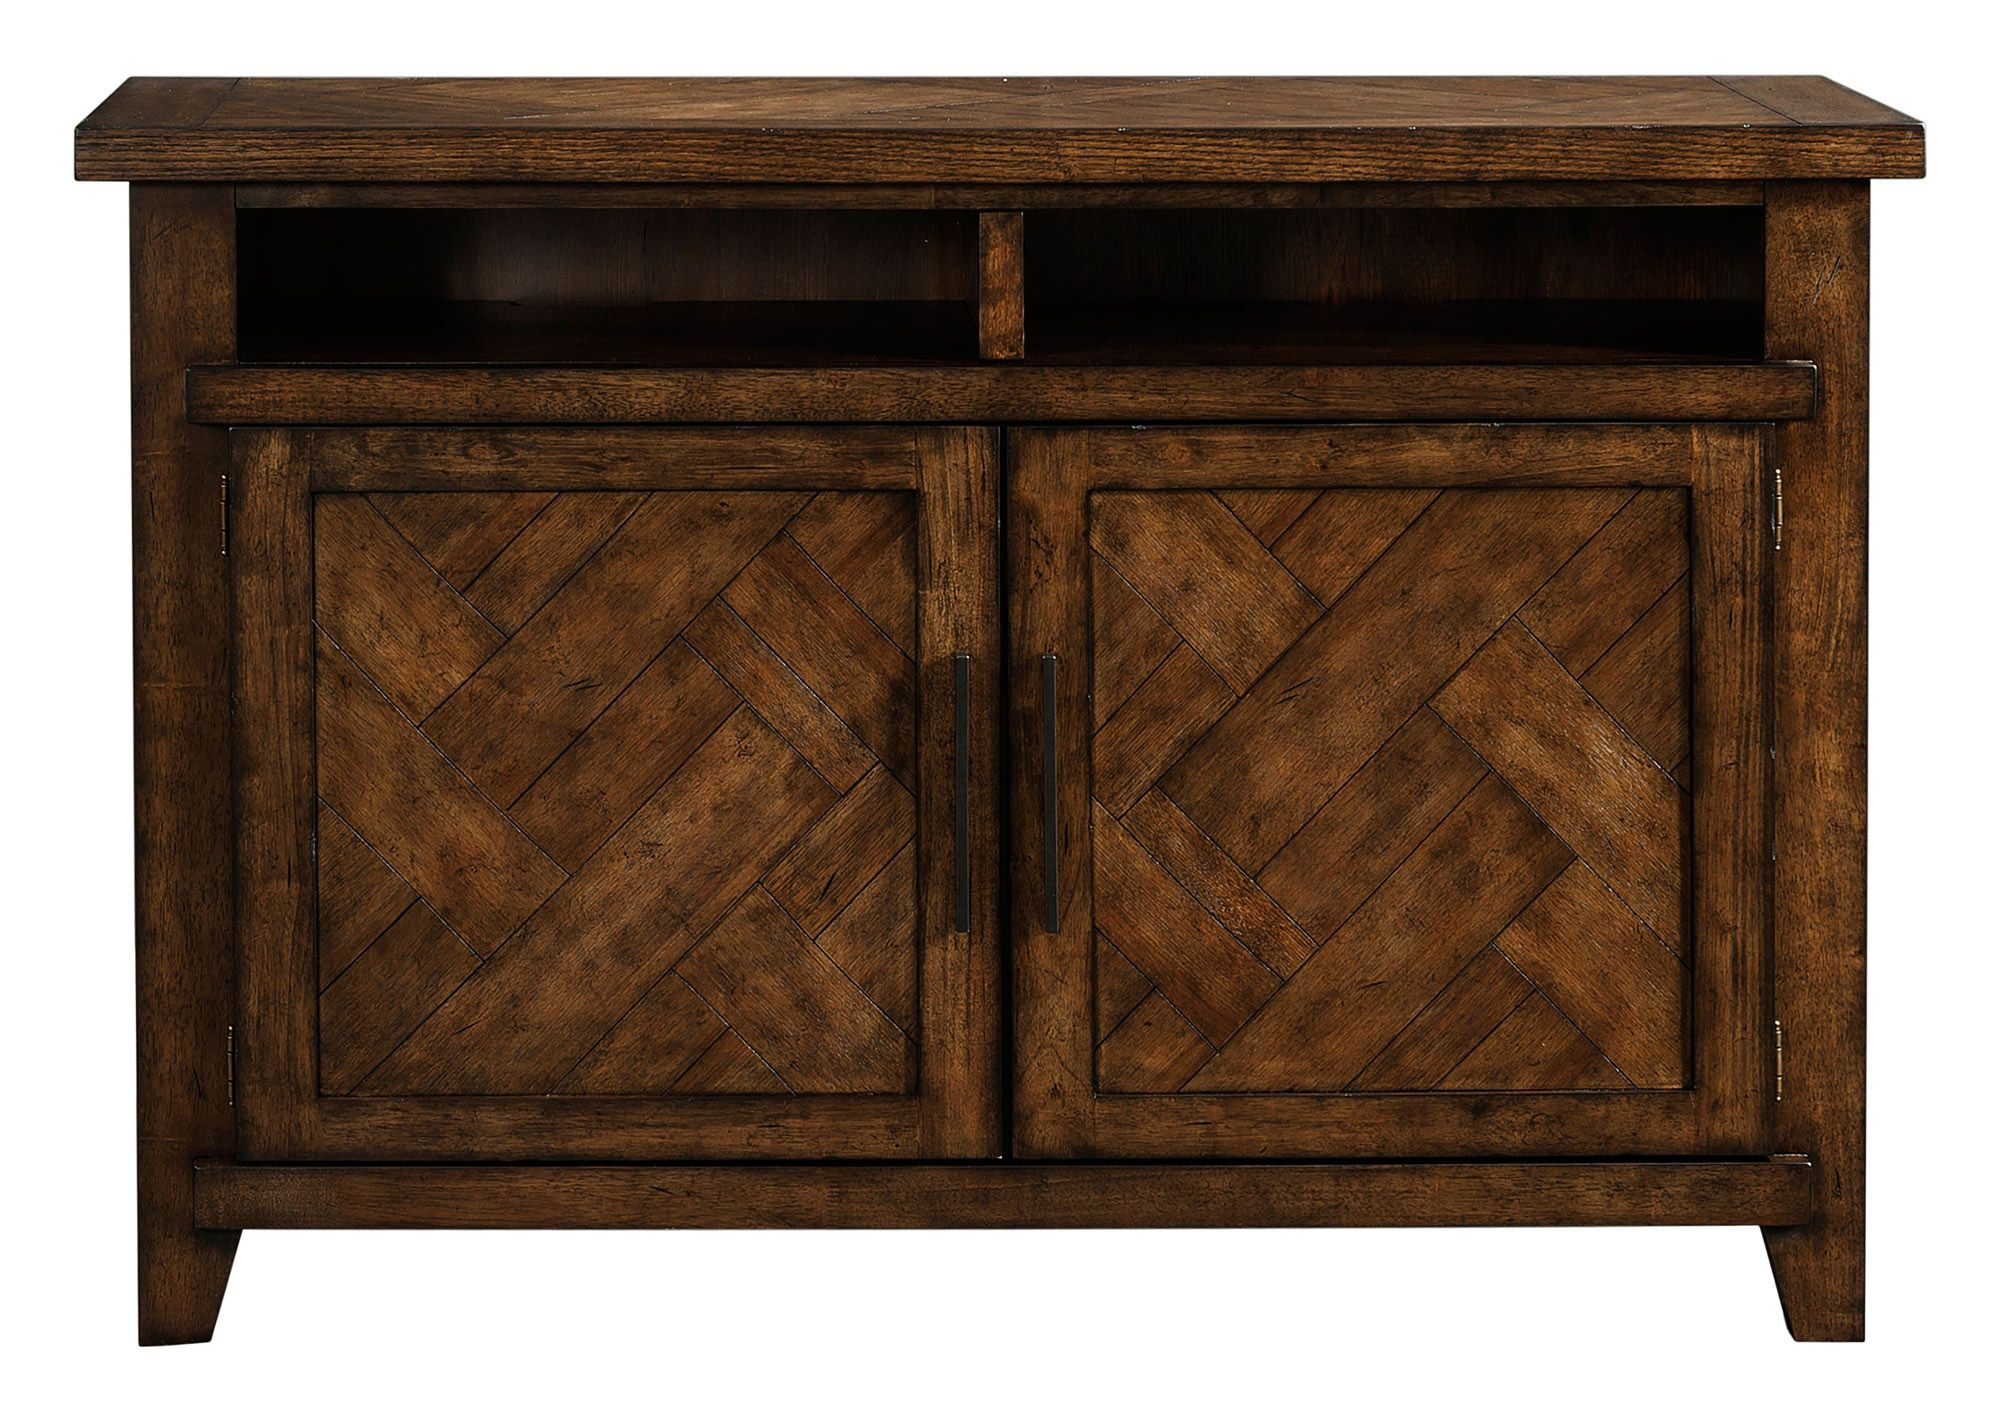 Pieceworks Buffet Broyhill Home Gallery Stores Buffet Broyhill Furniture